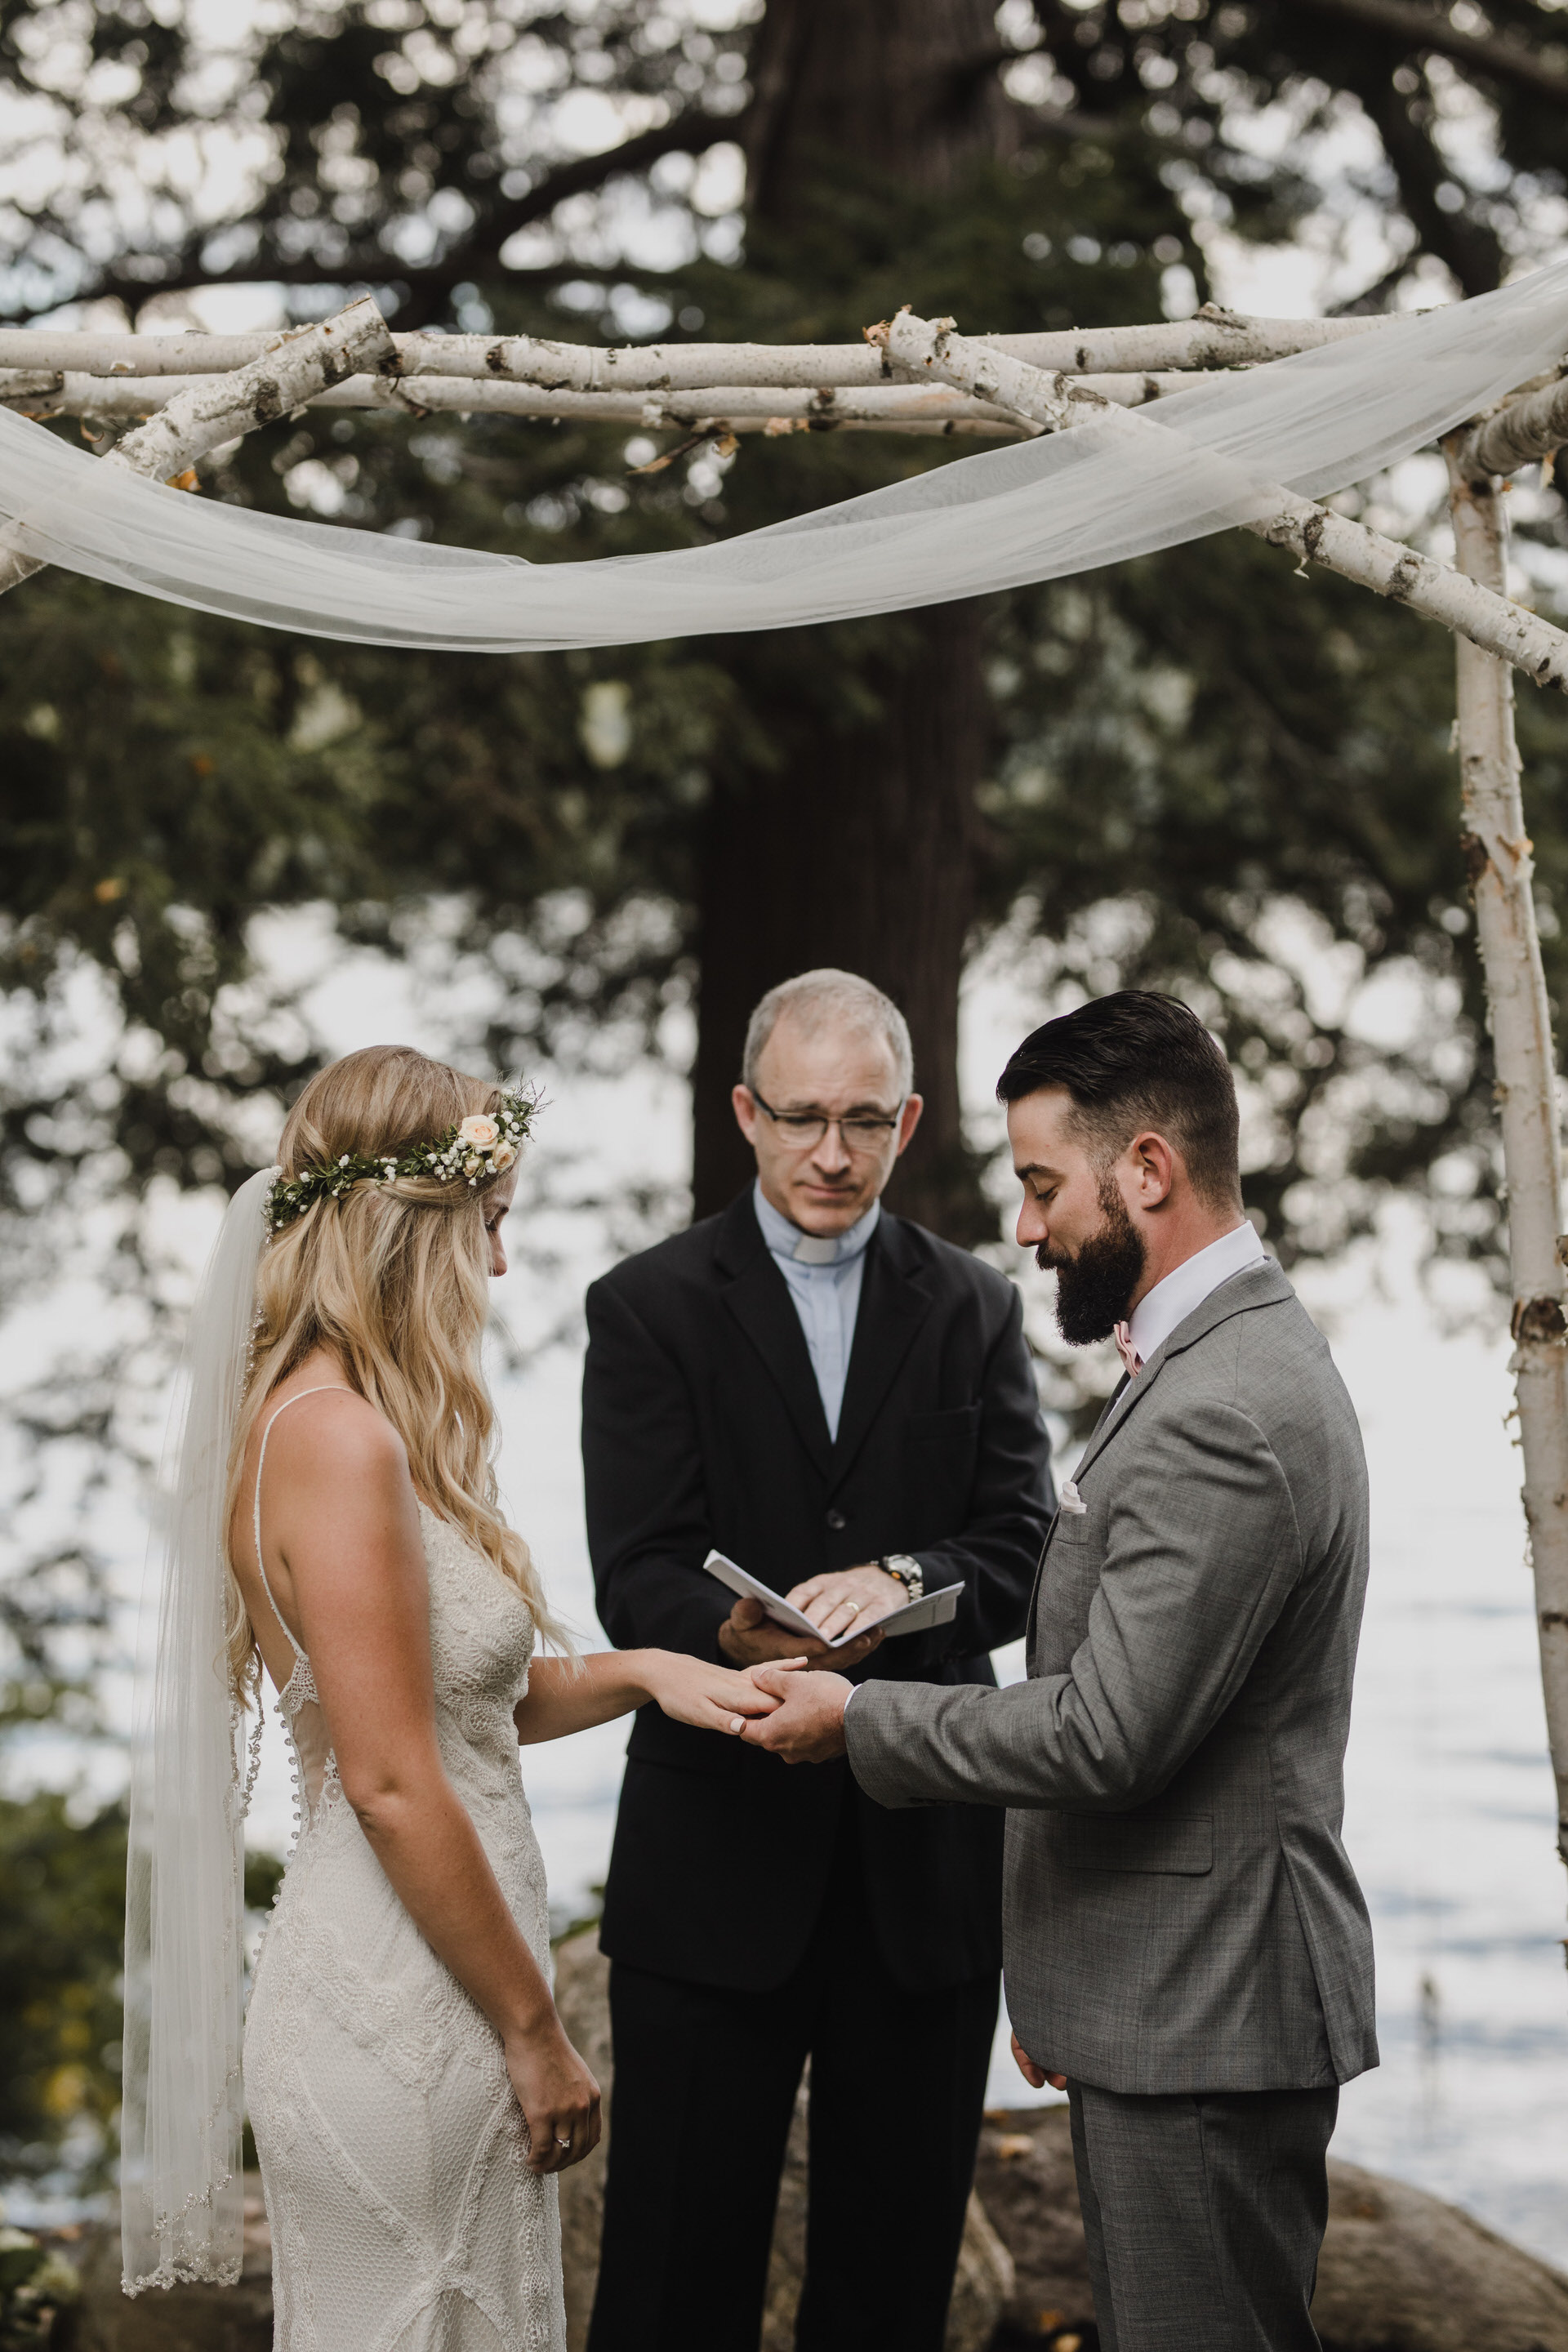 Muskoka Wedding - exchanging rings